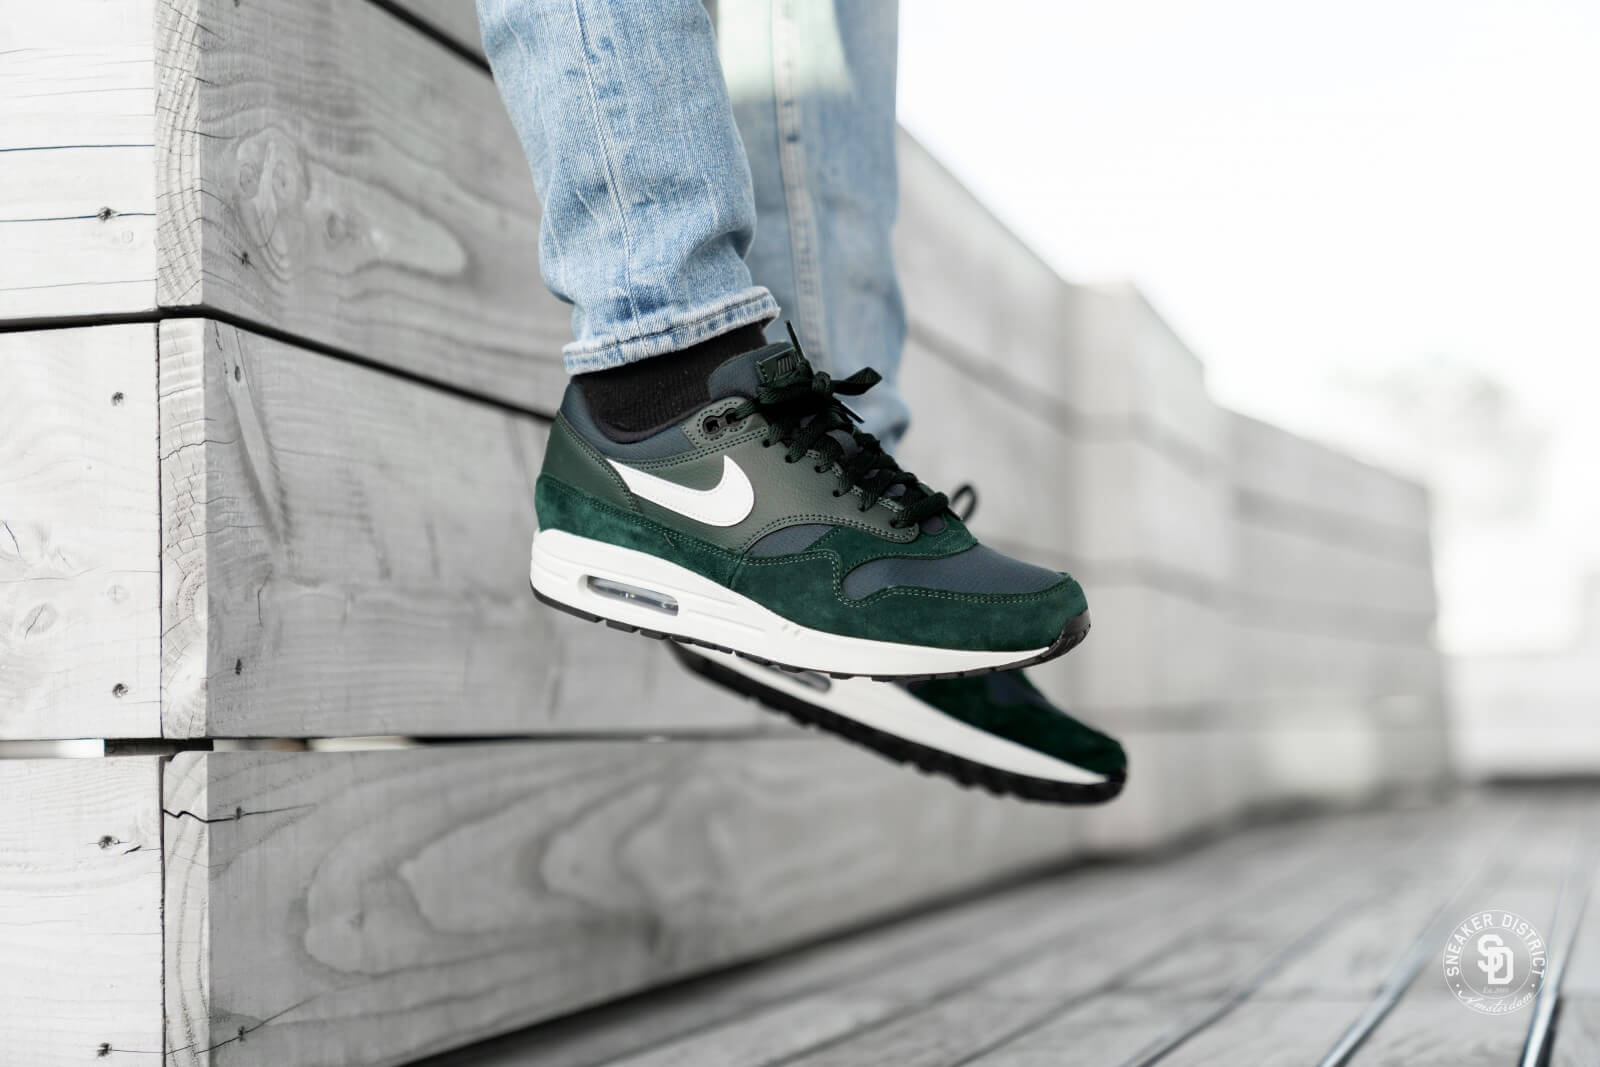 Nike Air Max 1 Outdoor Green/Sail-Black - AH8145-303